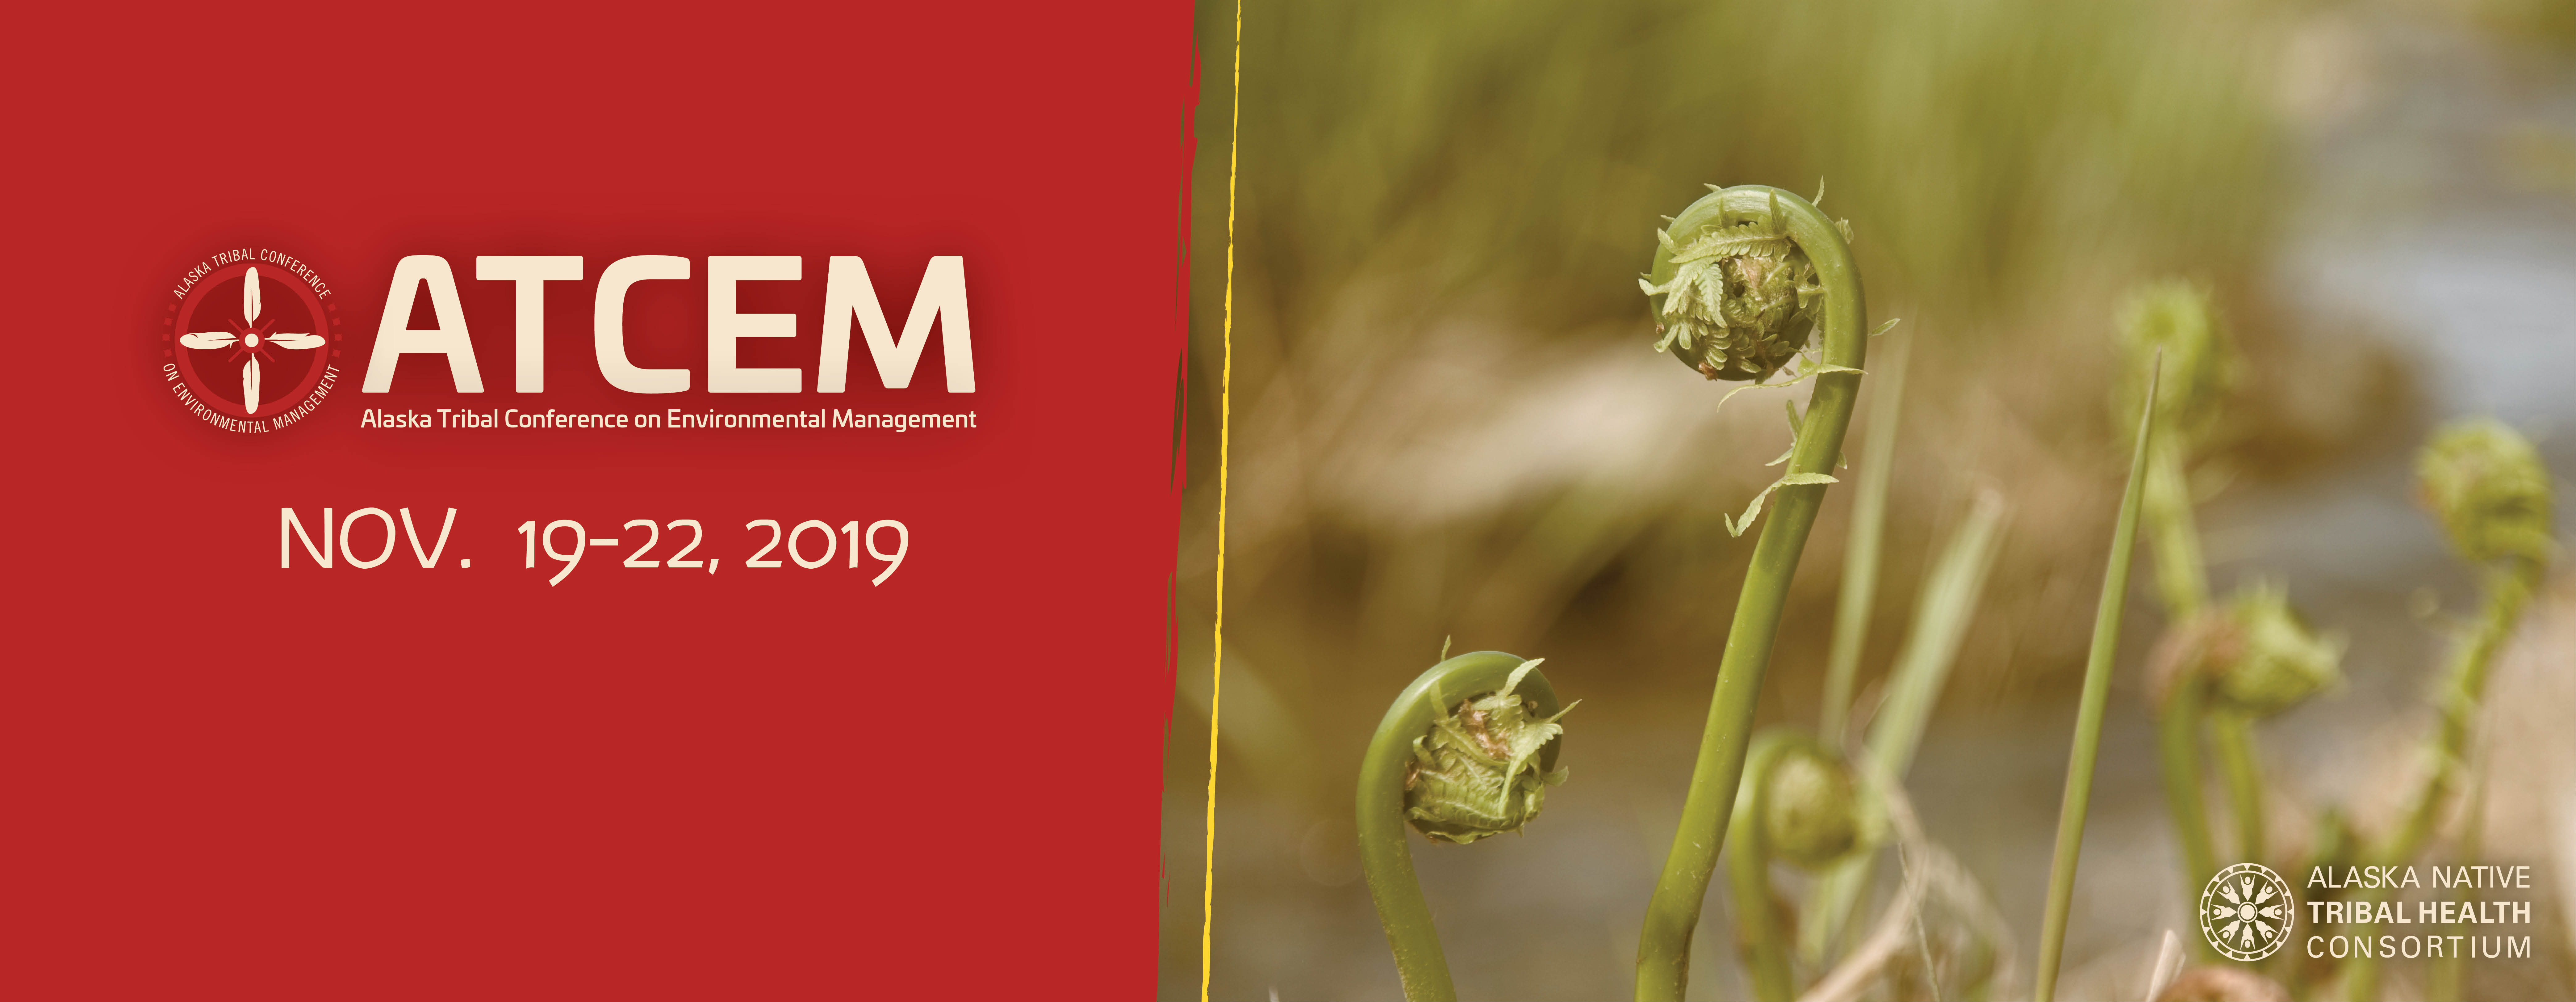 2018 ATCEM Conference Collateral_213